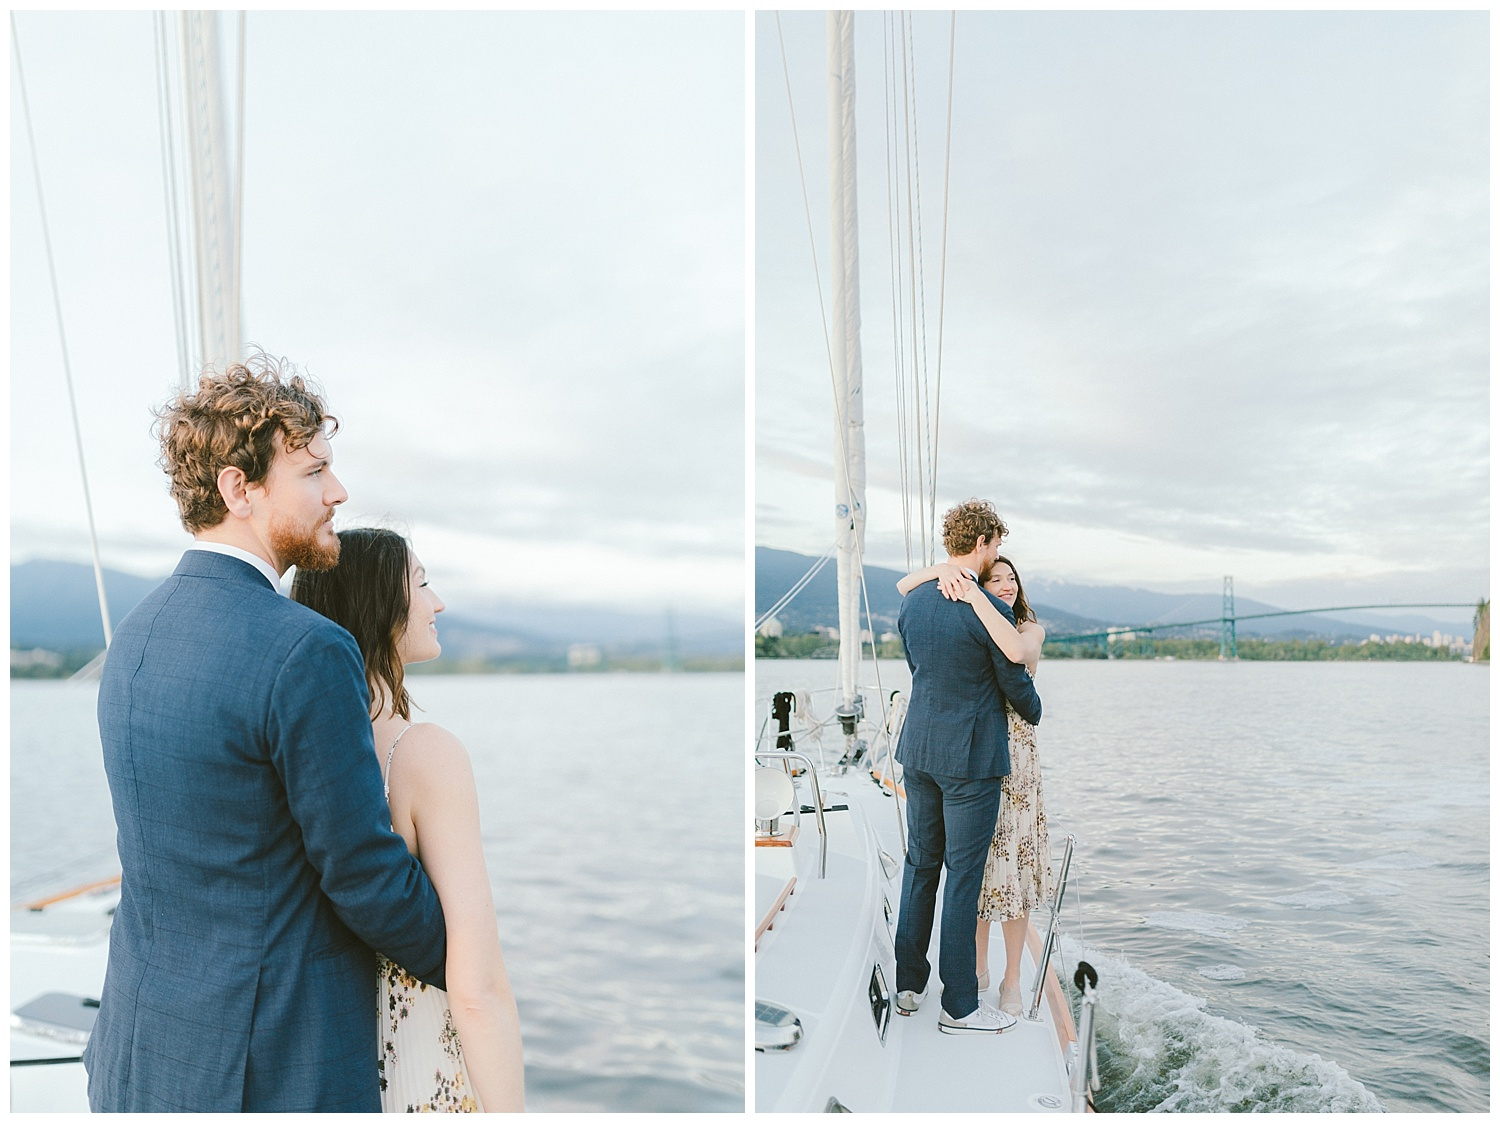 Hong Kong Vancouver fine art prewedding wedding photography photographer Mattie C.00056.jpg